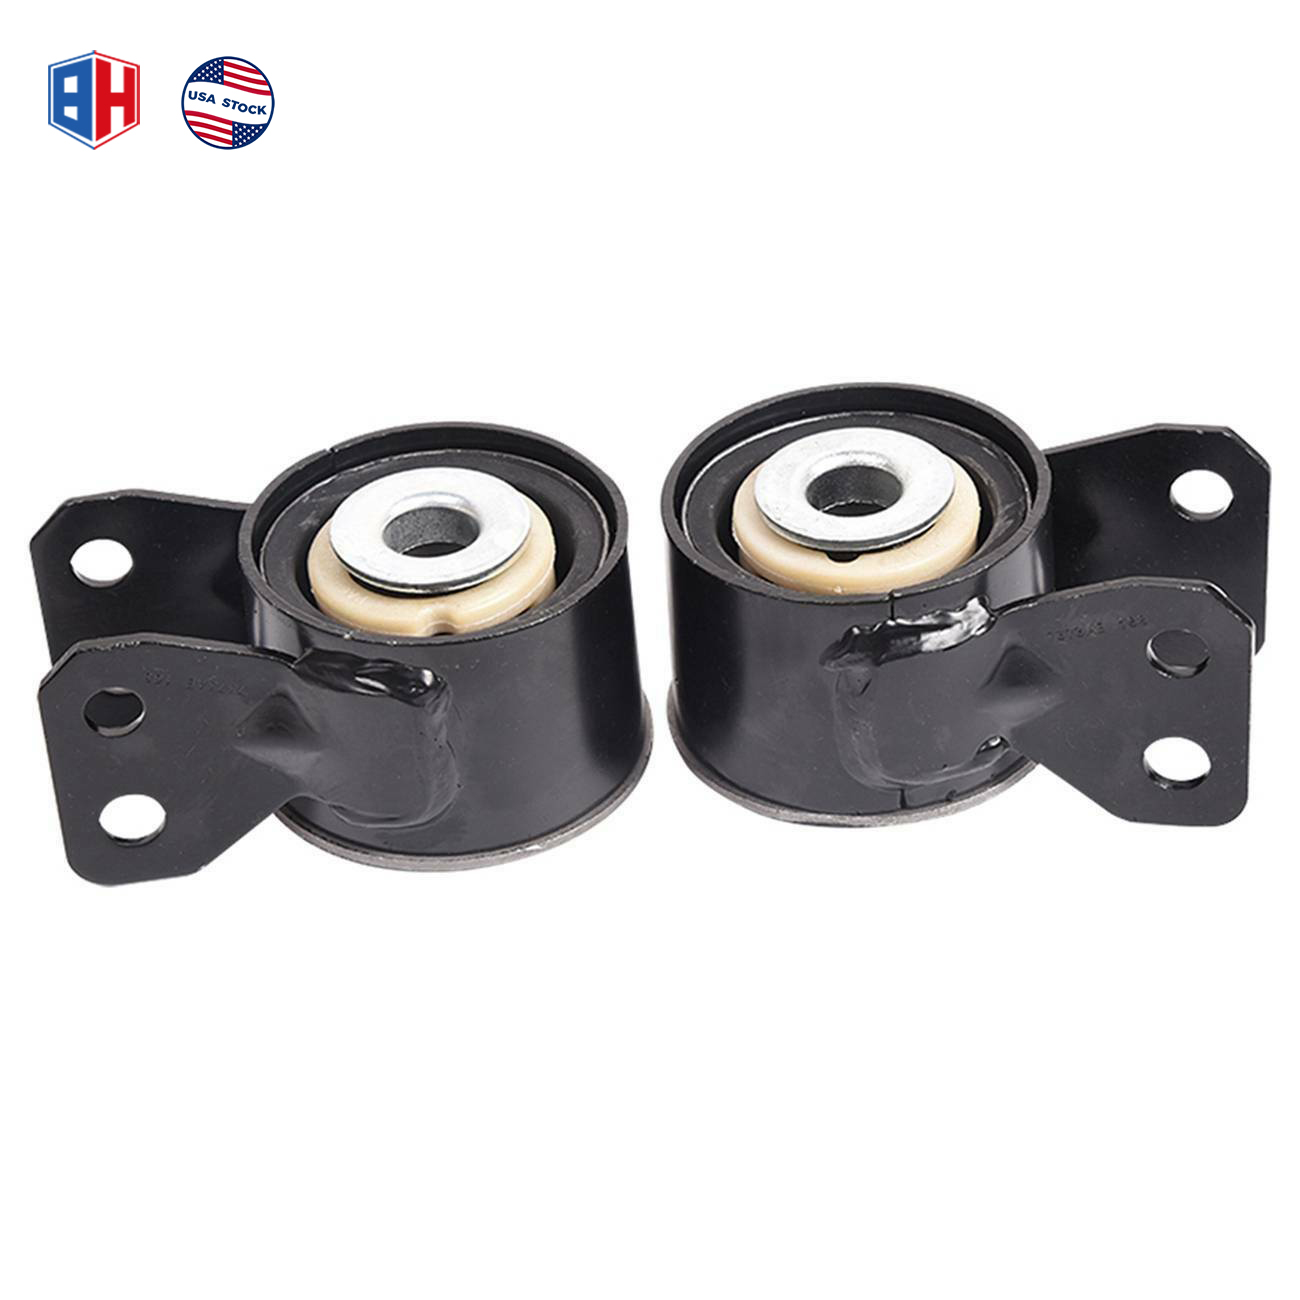 Pair Front Forward Lower Control Arm Bushing for GMC Acadia 2007-2017 K201187